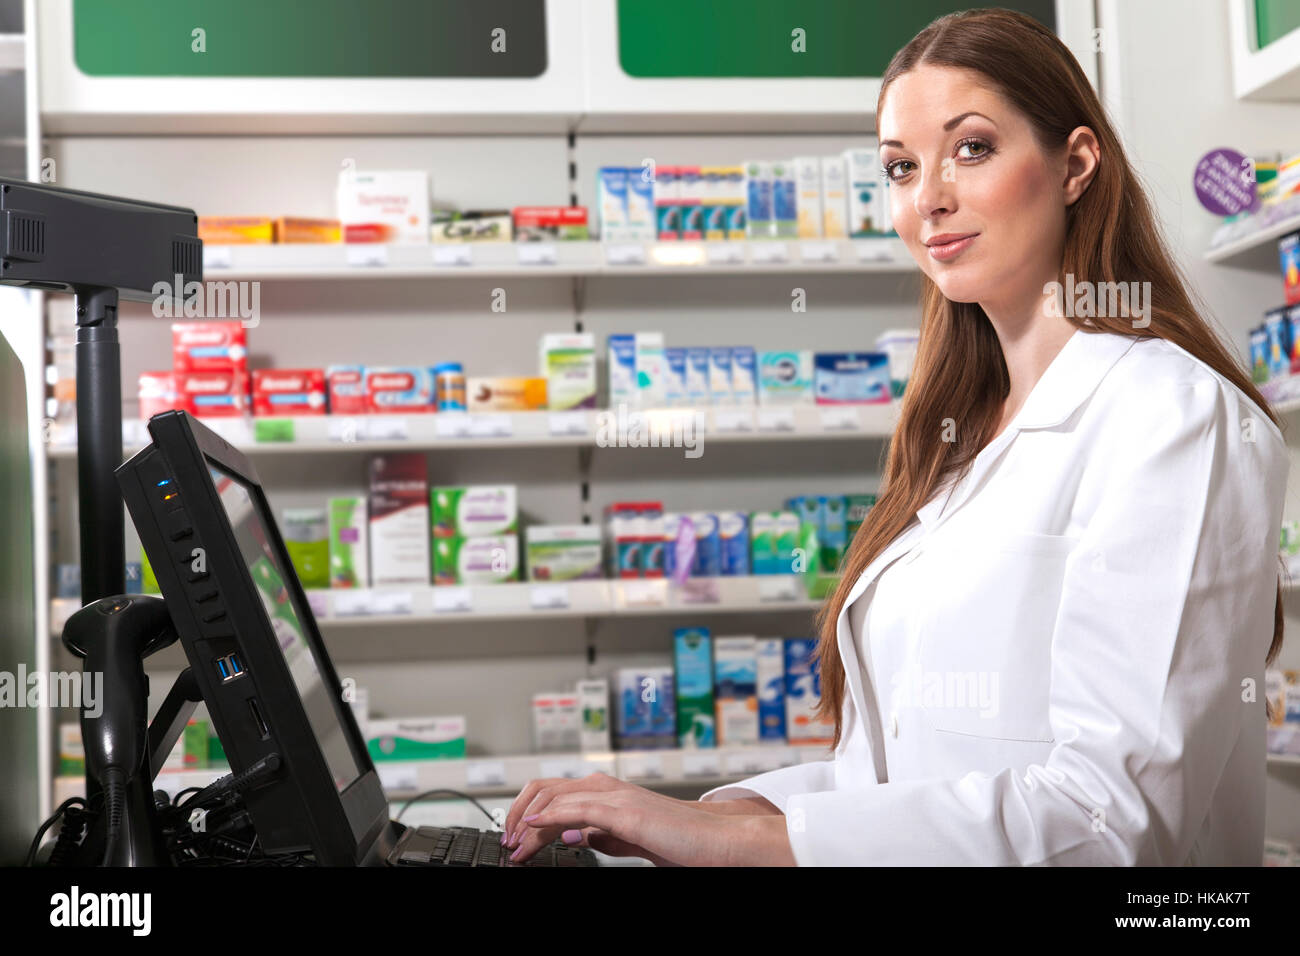 Female friendly pharmacist at the cash desk computer looks at the camera - Stock Image